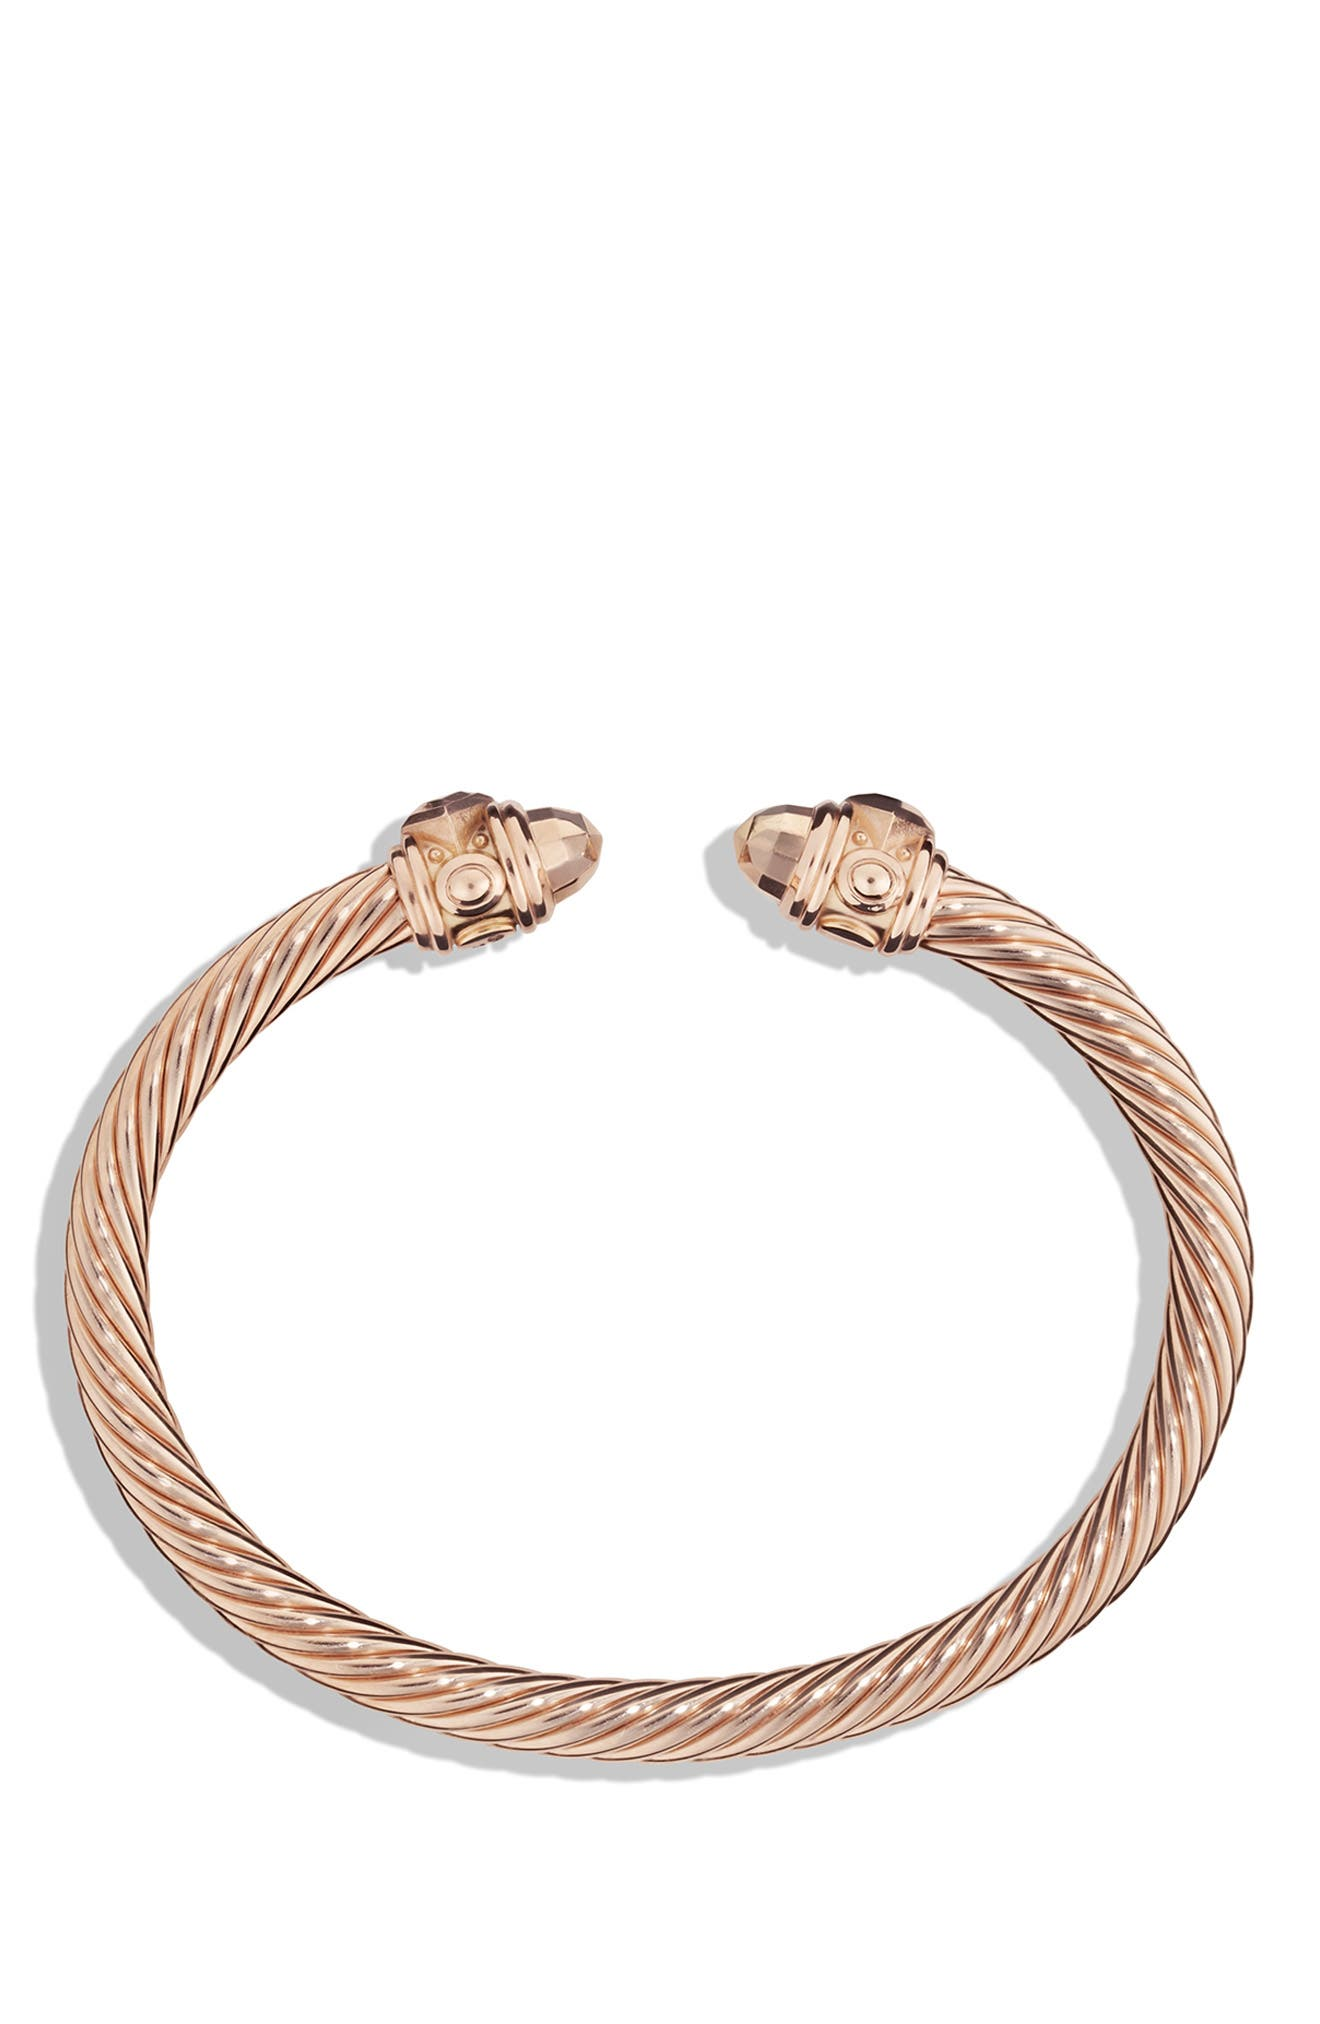 Renaissance Bracelet in 18K Rose Gold, 5mm,                             Alternate thumbnail 2, color,                             ROSE GOLD